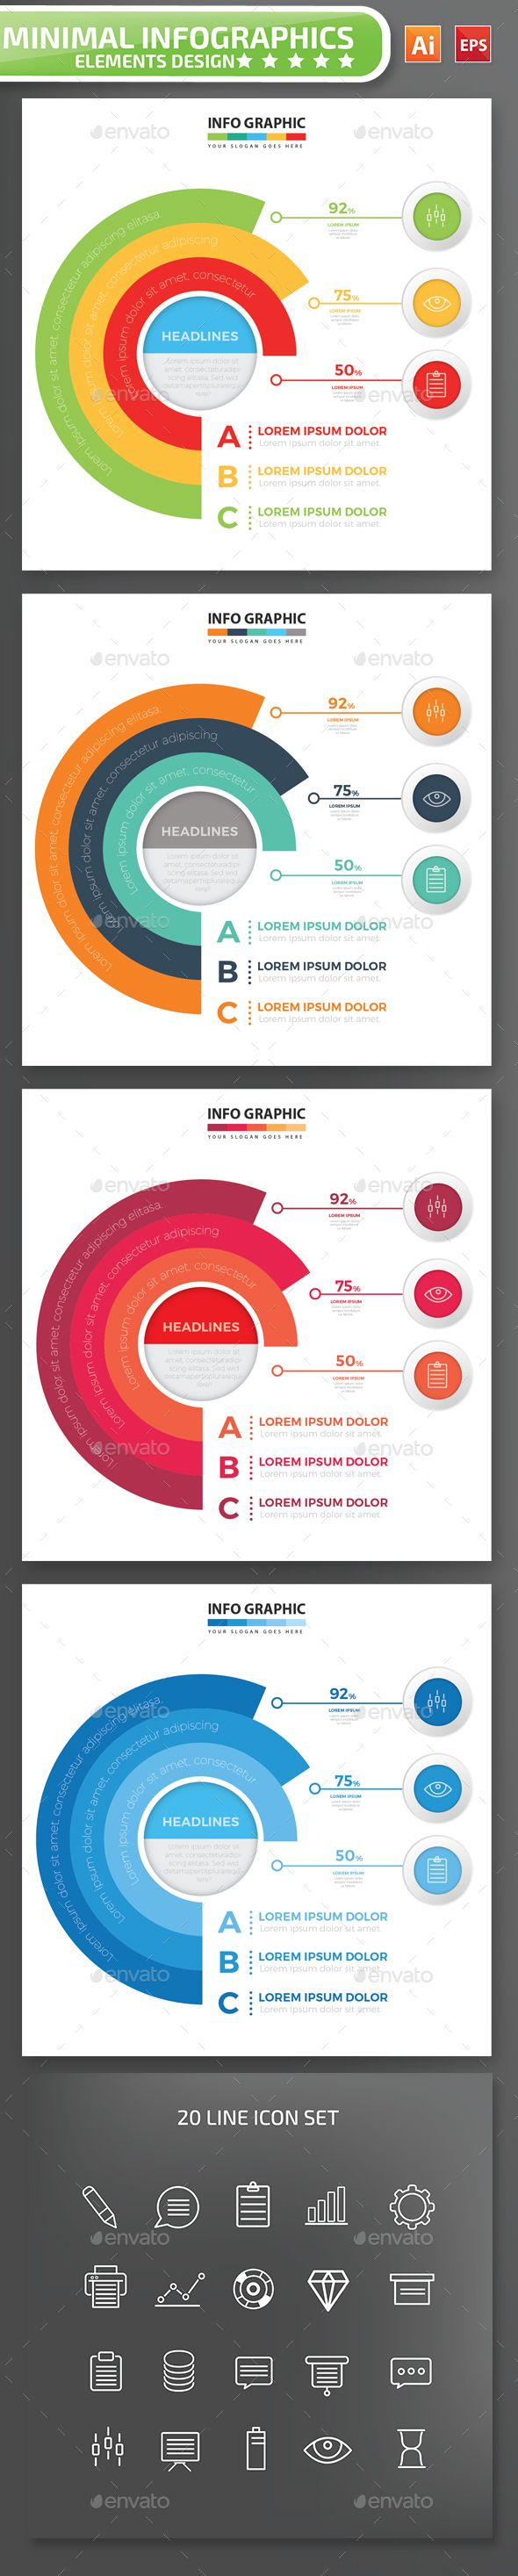 Minimal infographic Design Template Vector EPS, AI Illustrator. Download here: https://graphicriver.net/item/minimal-infographic-design/17177025?ref=ksioks